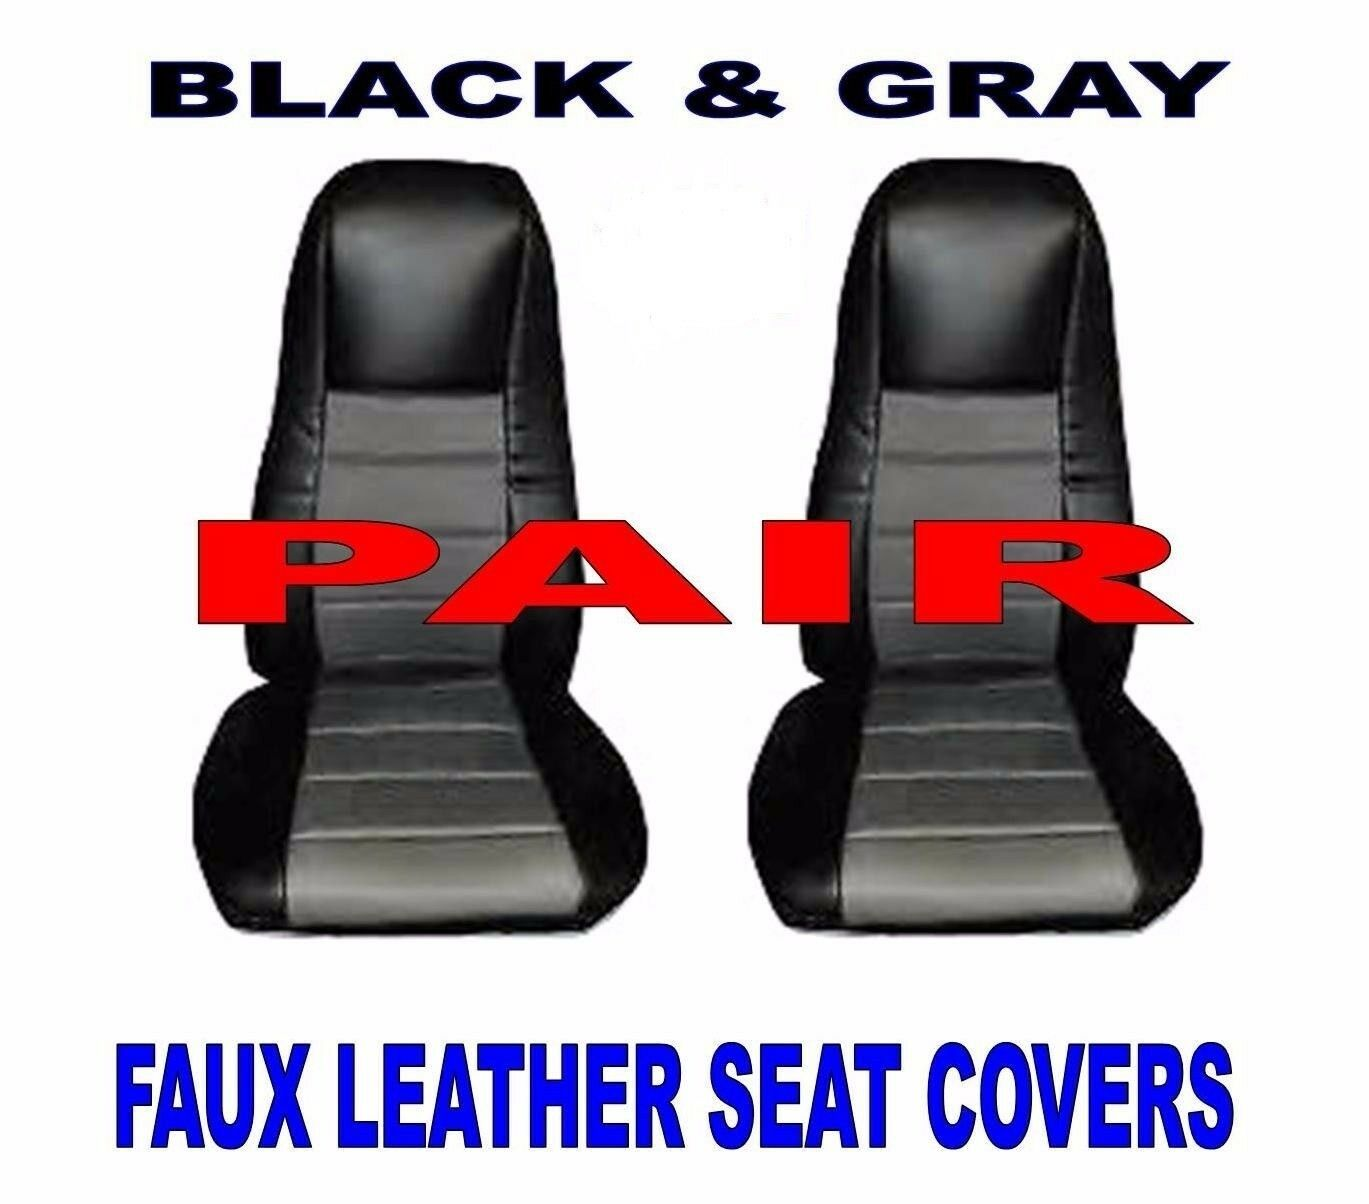 Black/Gray Leather Truck Seat Covers for Peterbilt, Freightliner, Pair